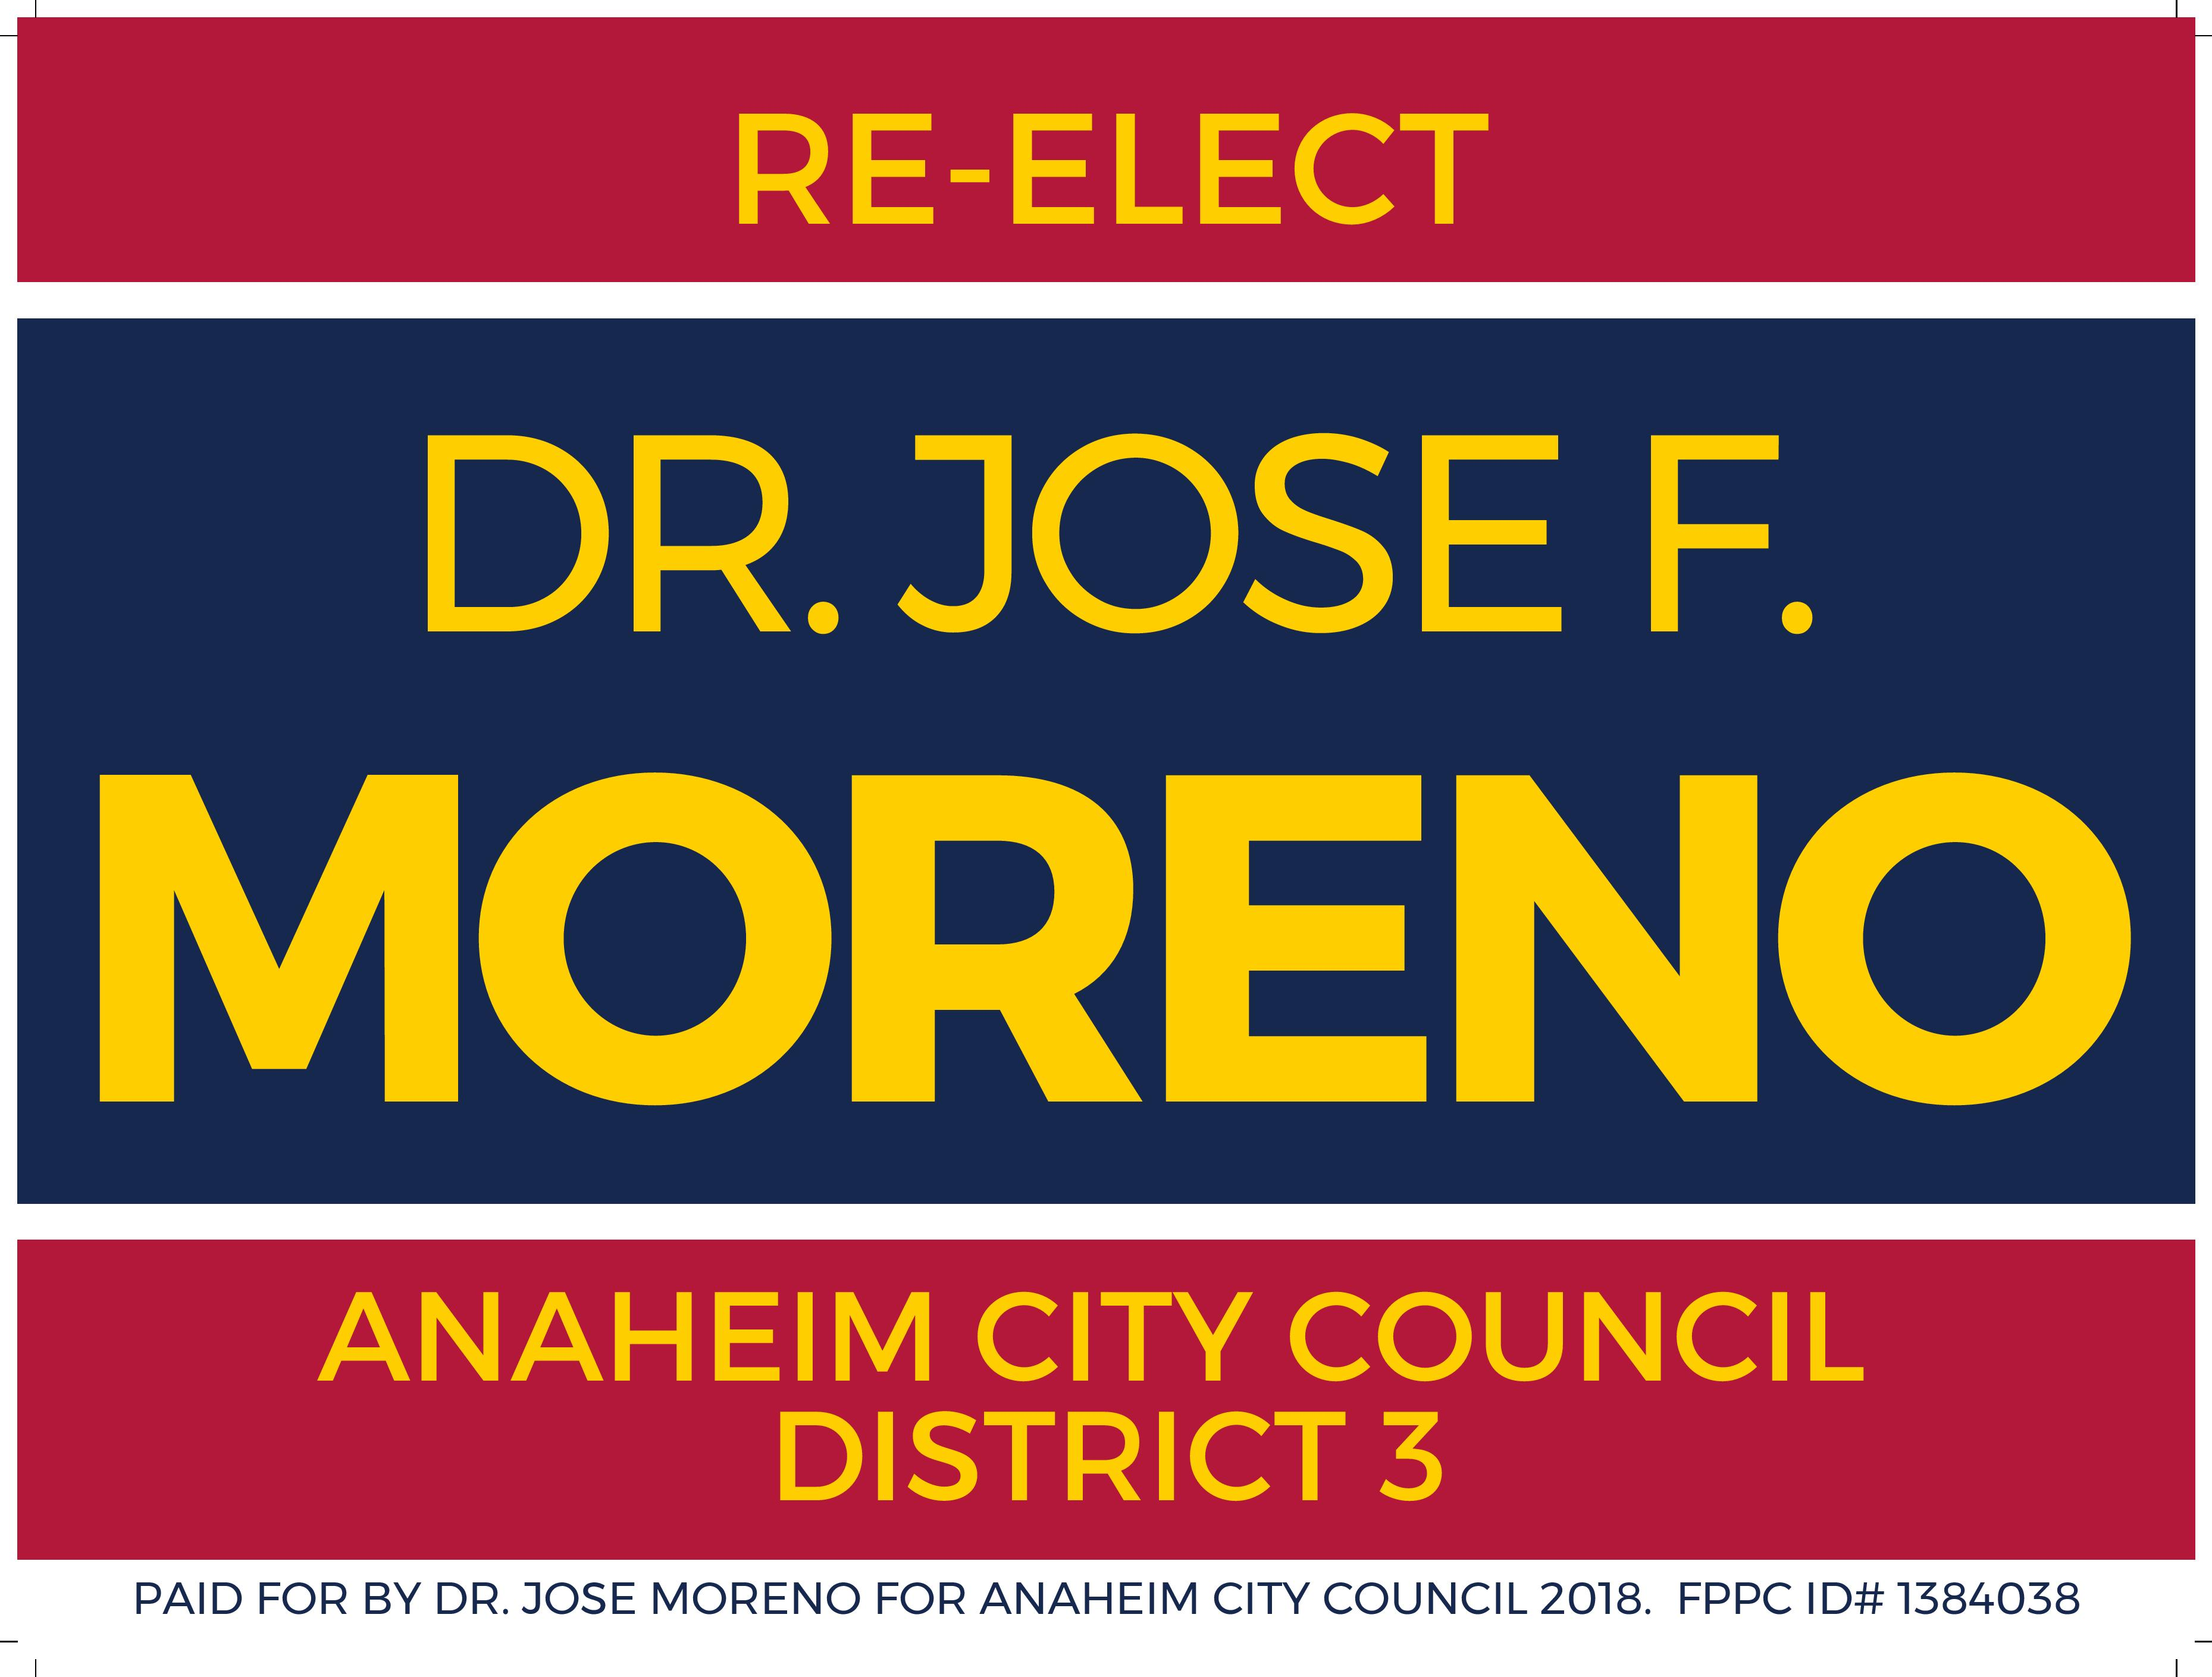 Dr. Jose F. Moreno for Anaheim City Council 2018